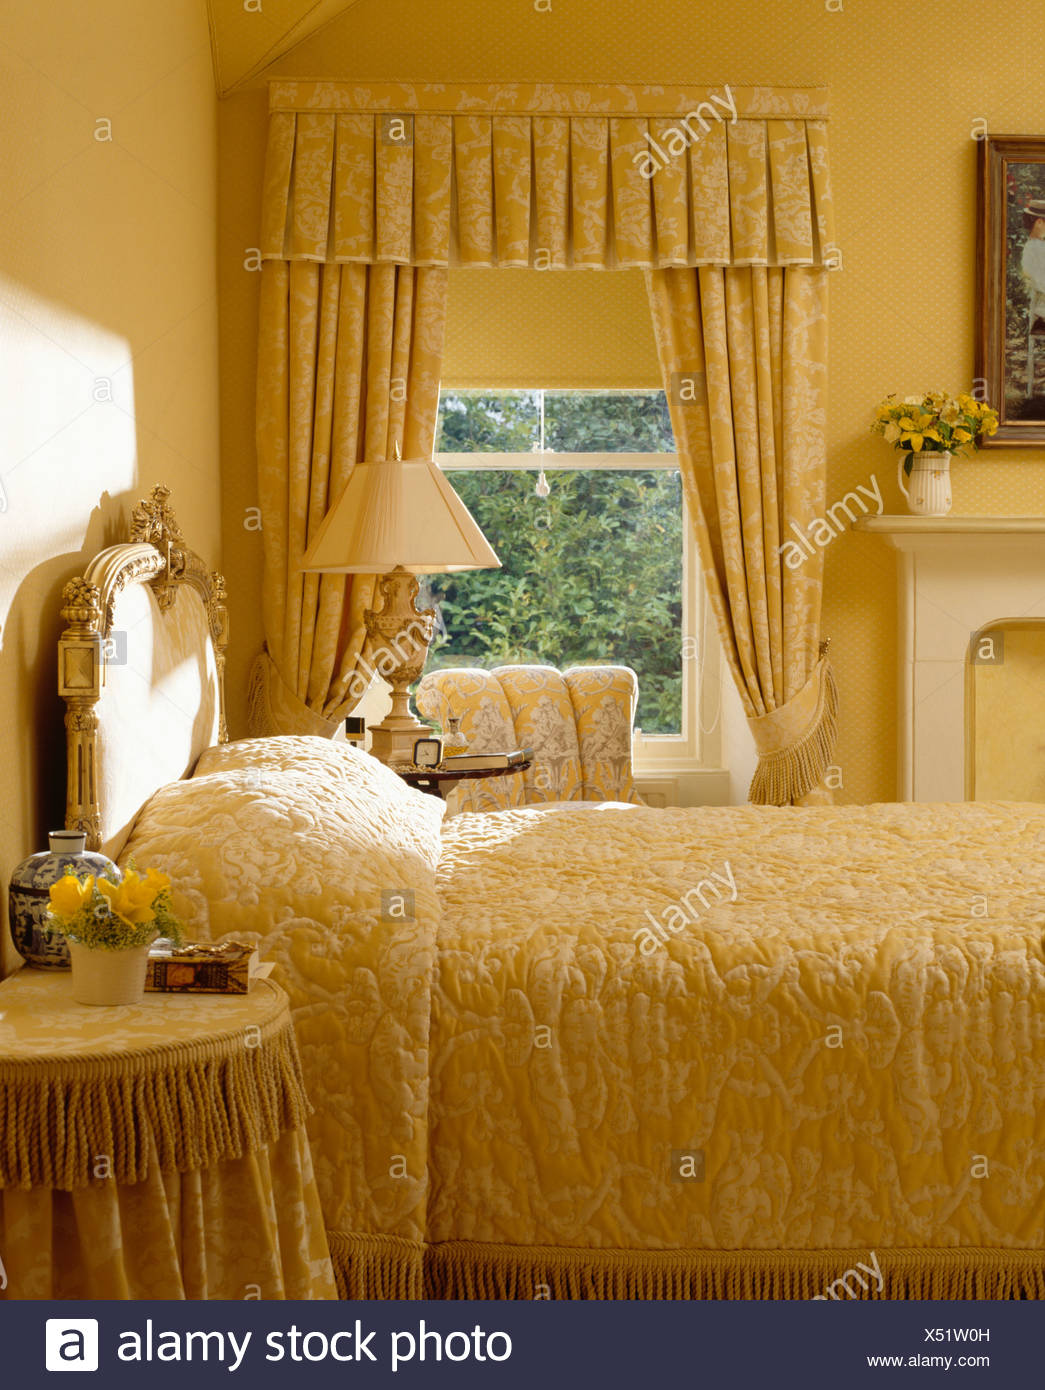 Pastel Yellow Bedroom With Quilt And Matching Drapes And Blind At